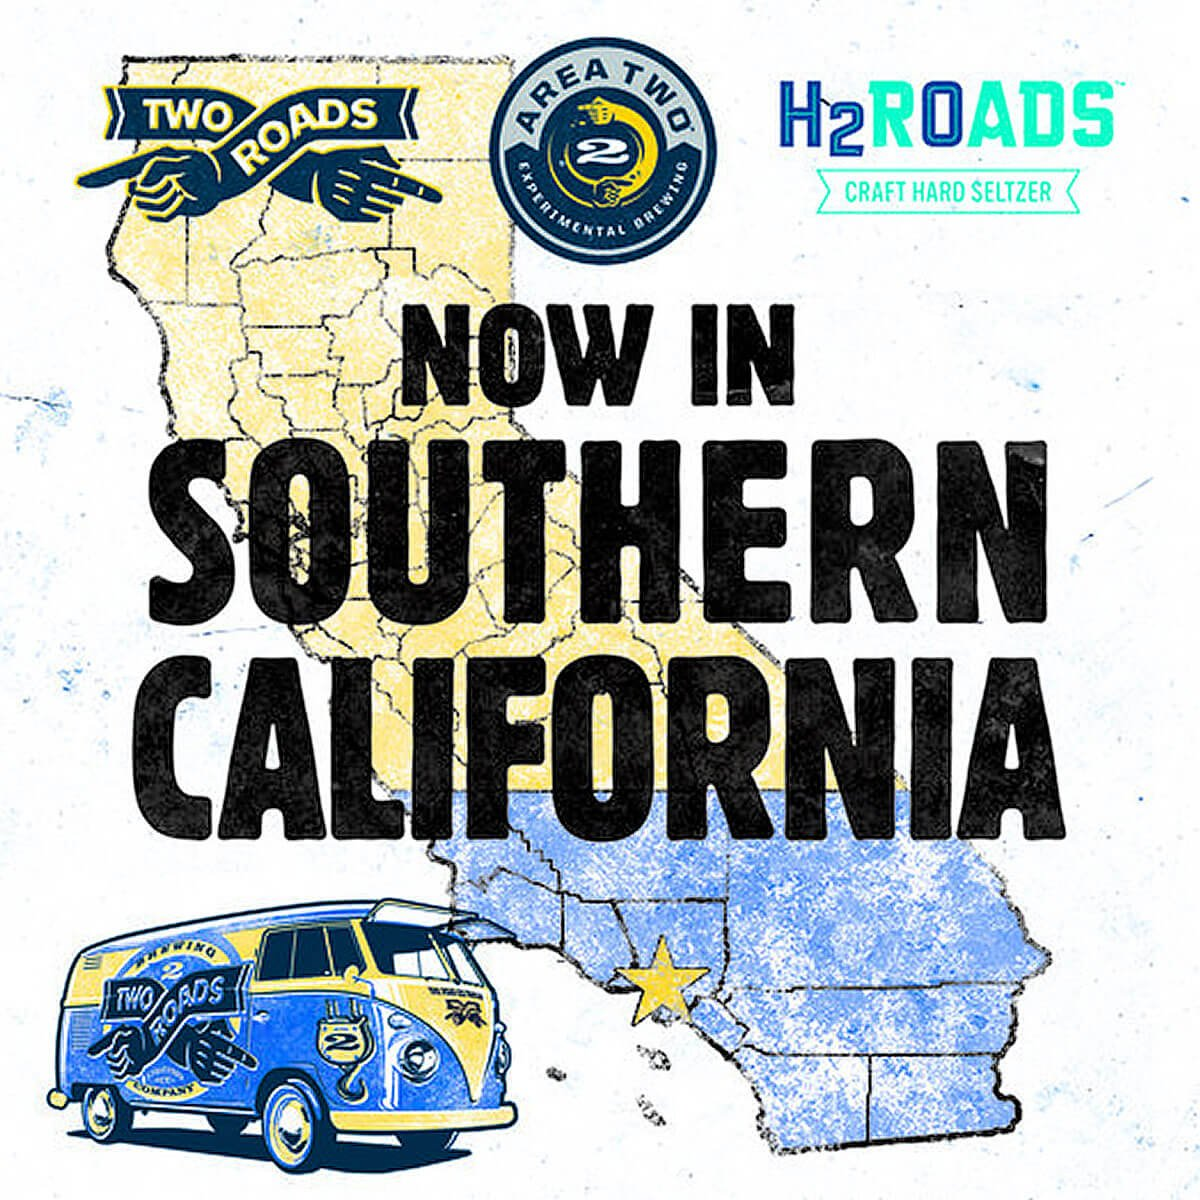 Two Roads Brewing Co announced that its Road Less Traveled beers are rolling into Southern California with products on store shelves now.